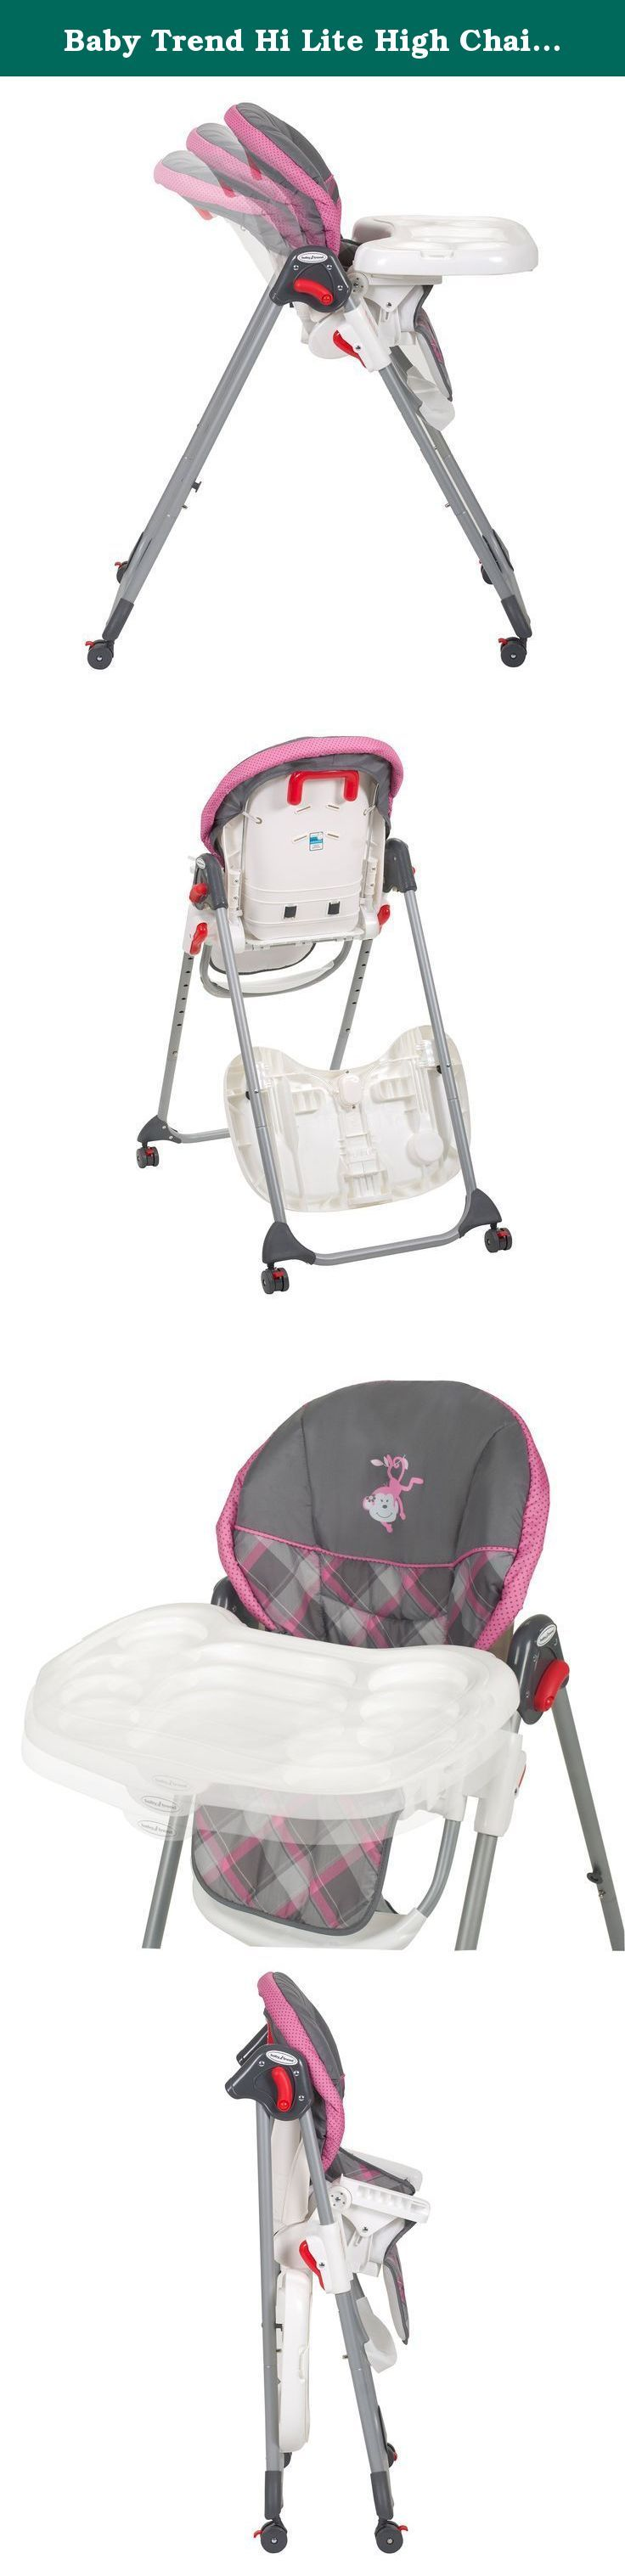 Baby Trend Hi Lite High Chair, Kira. The Baby Trend Hi-Lite High Chair offers style, safety, ease-of-use and versatility as your baby takes his or her first gulps of rice cereal and moves on to other exciting foods. Your little one is eating solid foods. What an exciting time! Your baby will be safe and comfortable during mealtime with this feature-packed Baby Trend Toddler High Chair. The Hi-Lite High Chair For Babies is easy to clean and the serving tray is dishwasher safe. The…